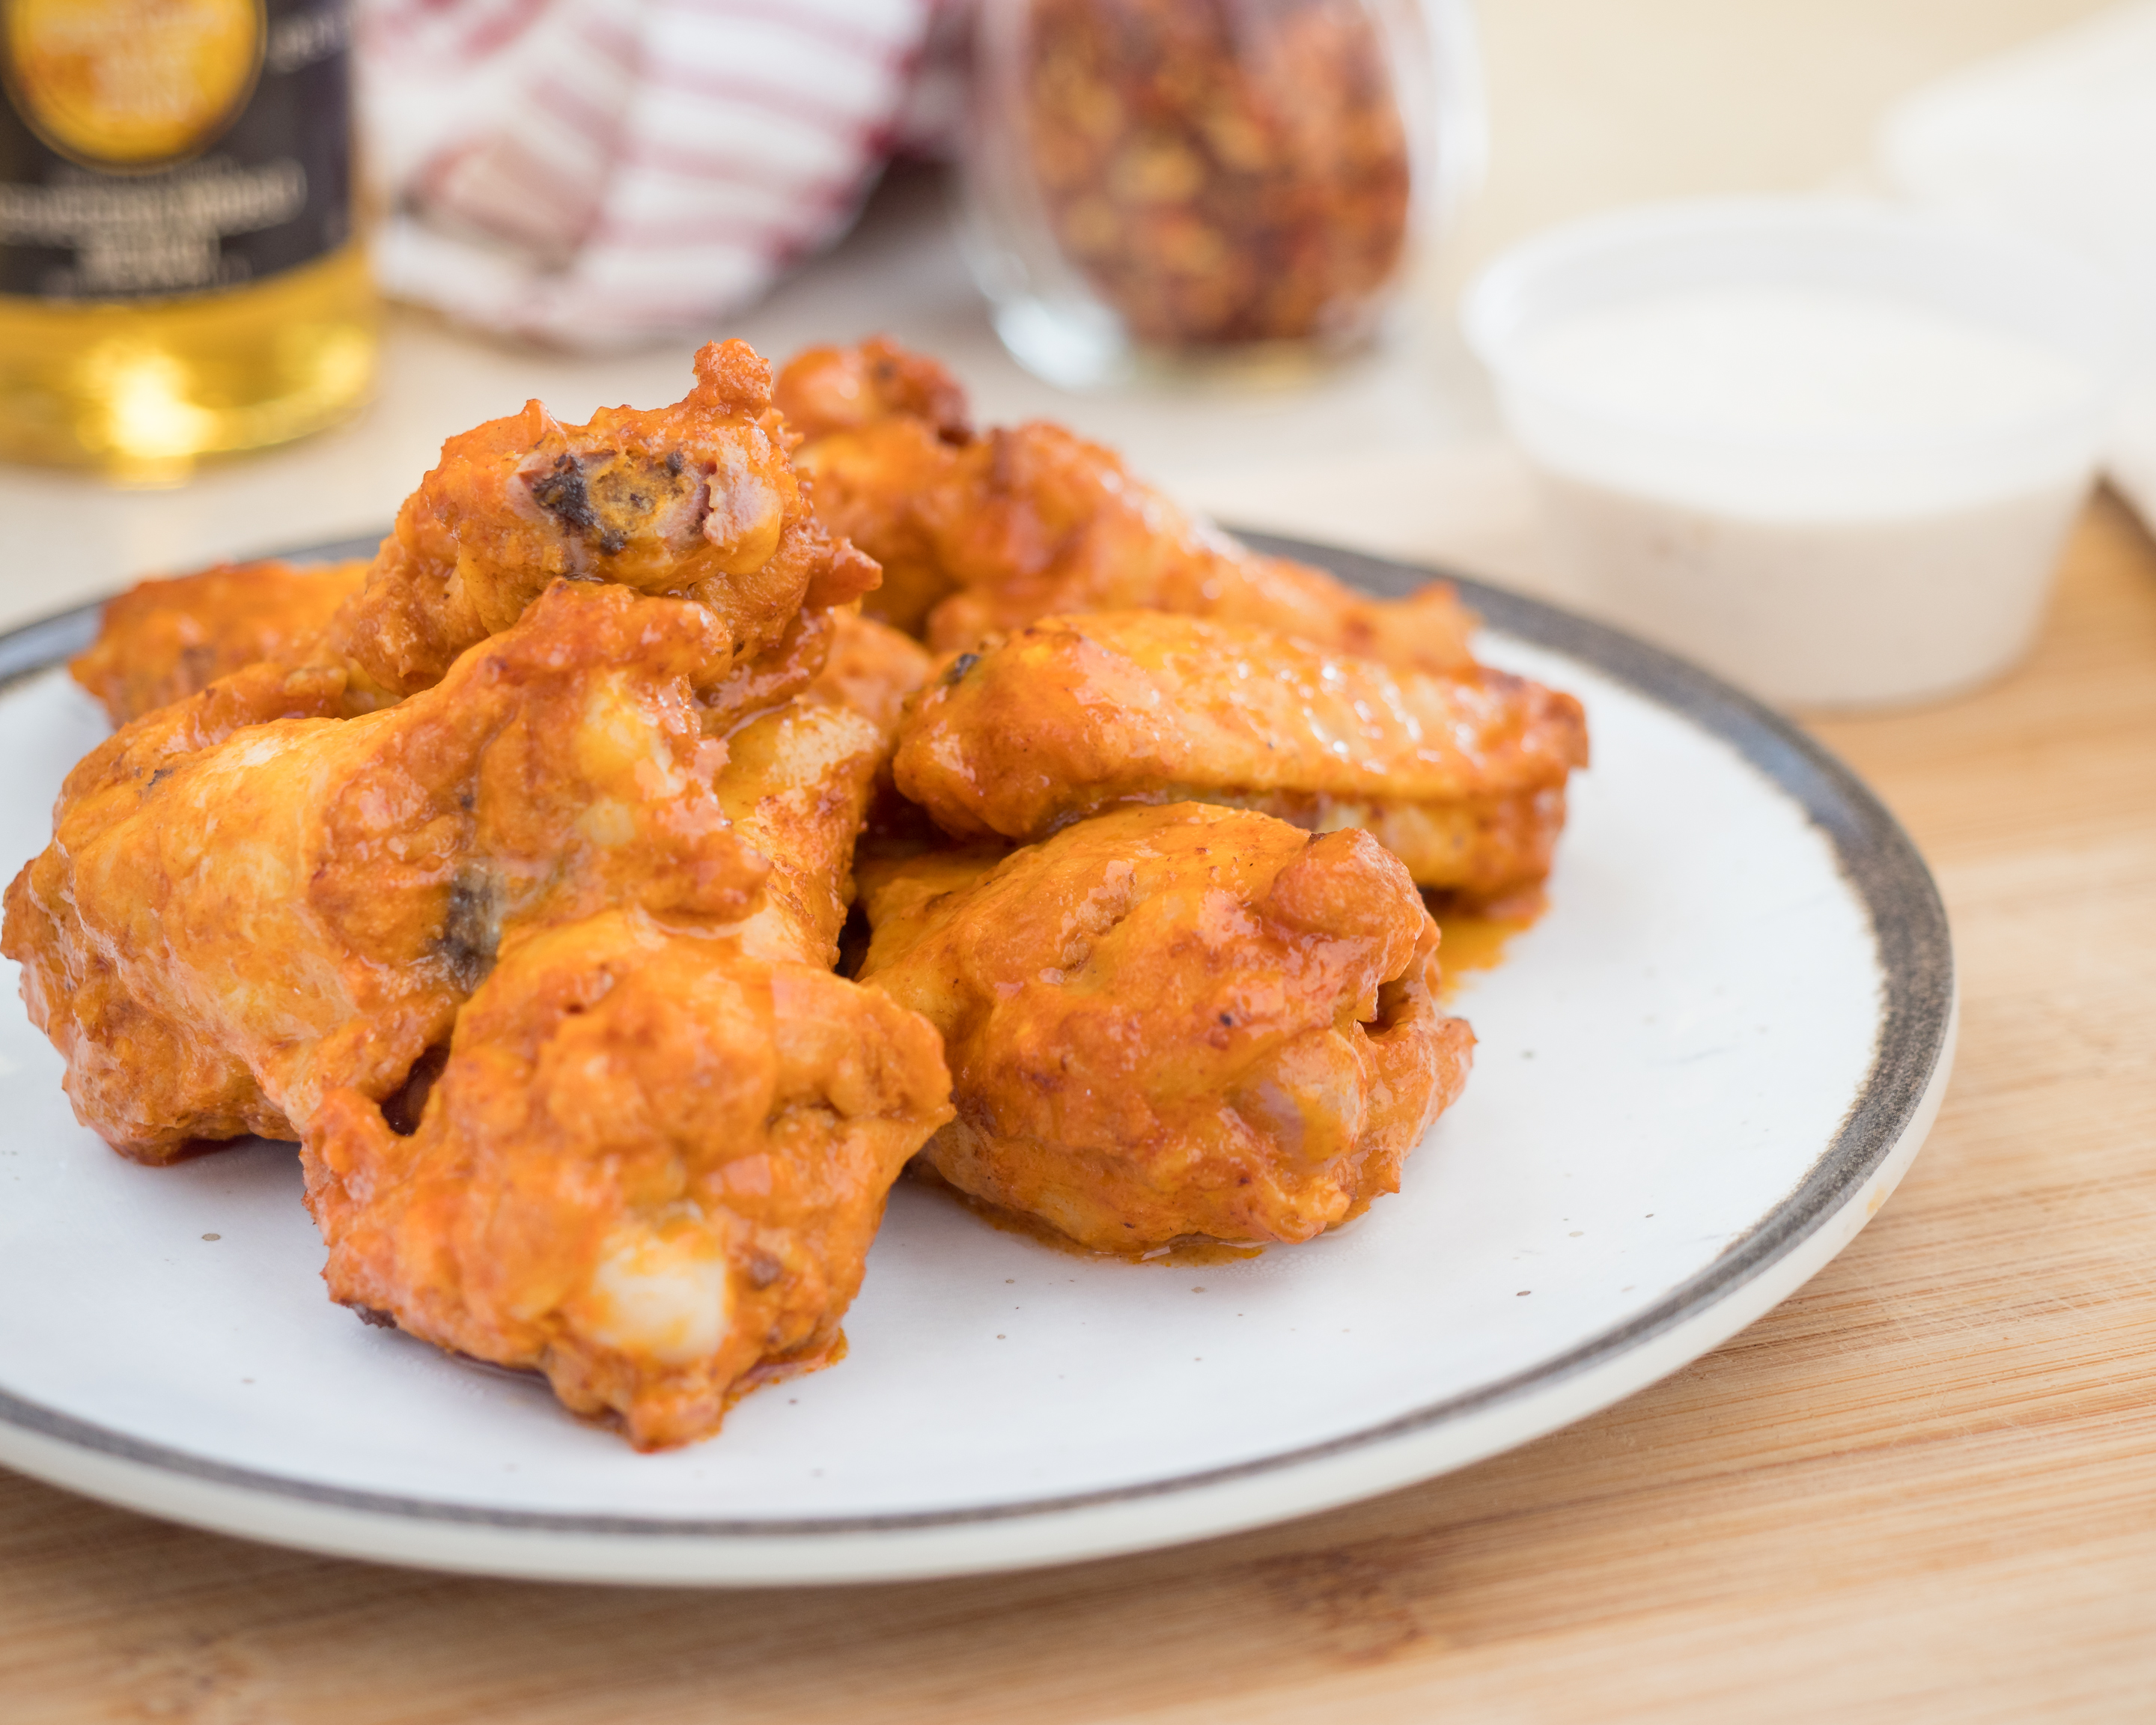 NYC Pizza_Wings_2880x2304